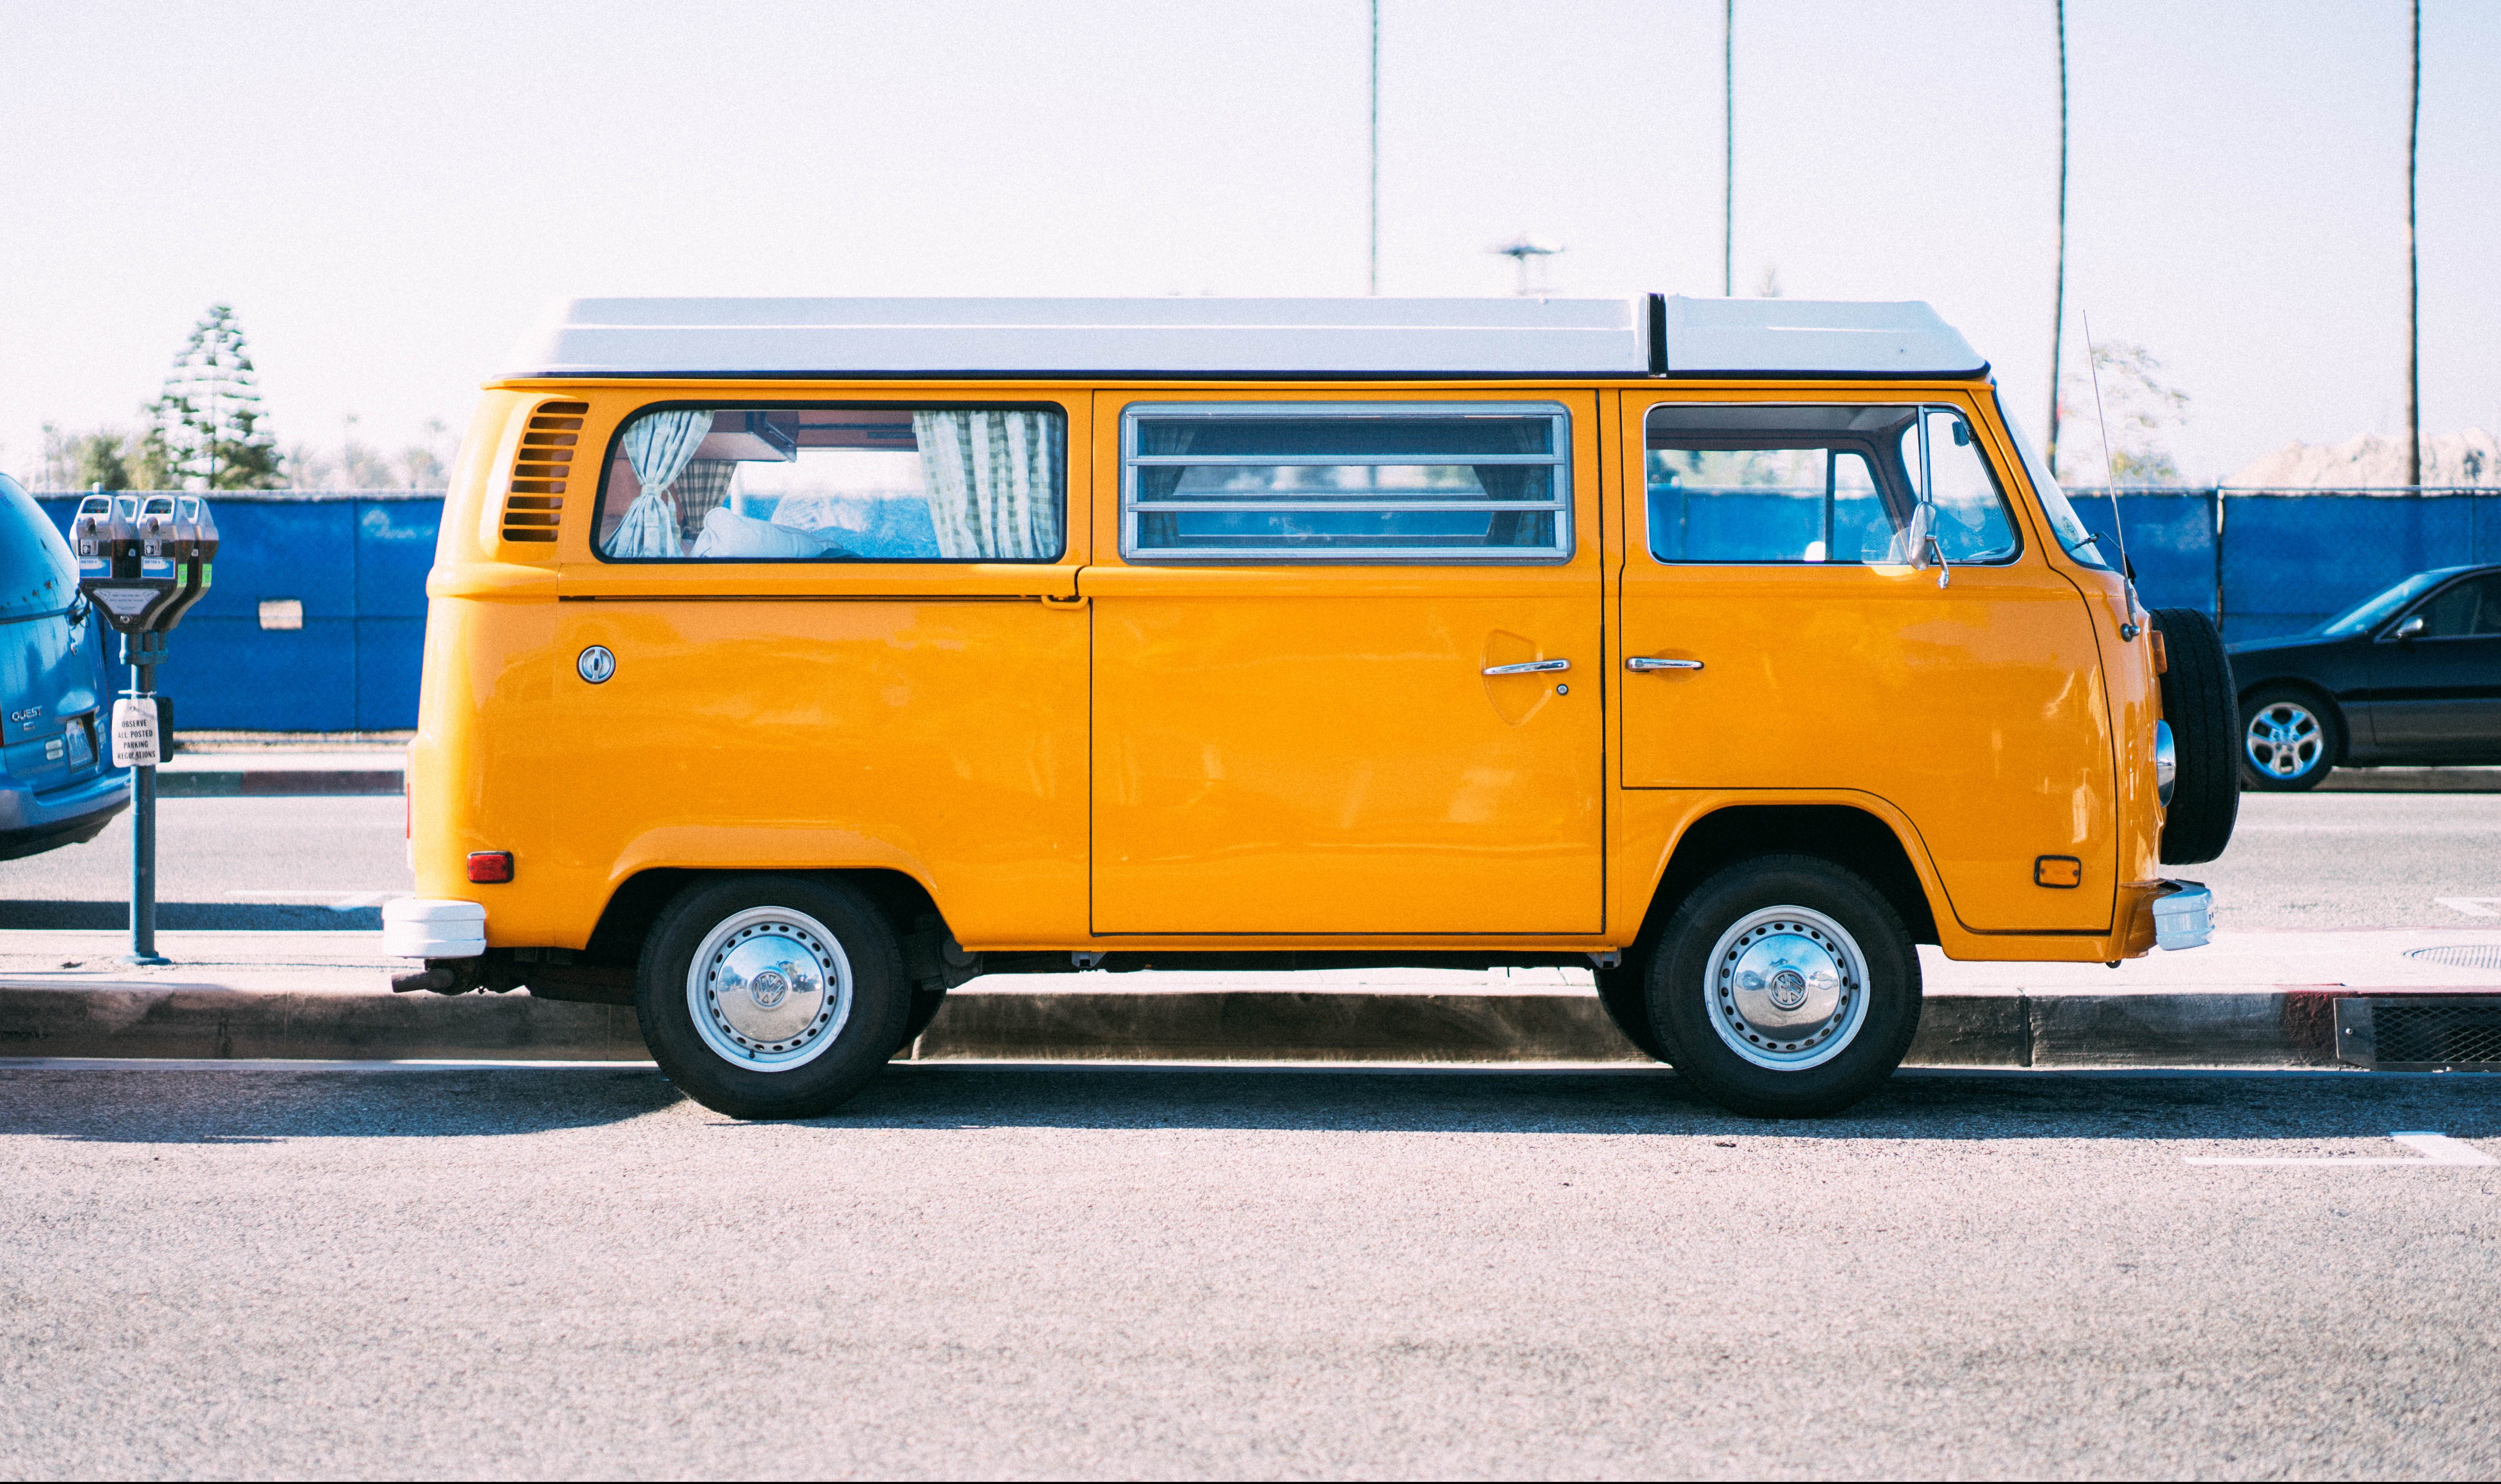 Vw Camper Van >> #vanlife: The magic recipe that caused hippies to fall in love with the incredible, enduring ...